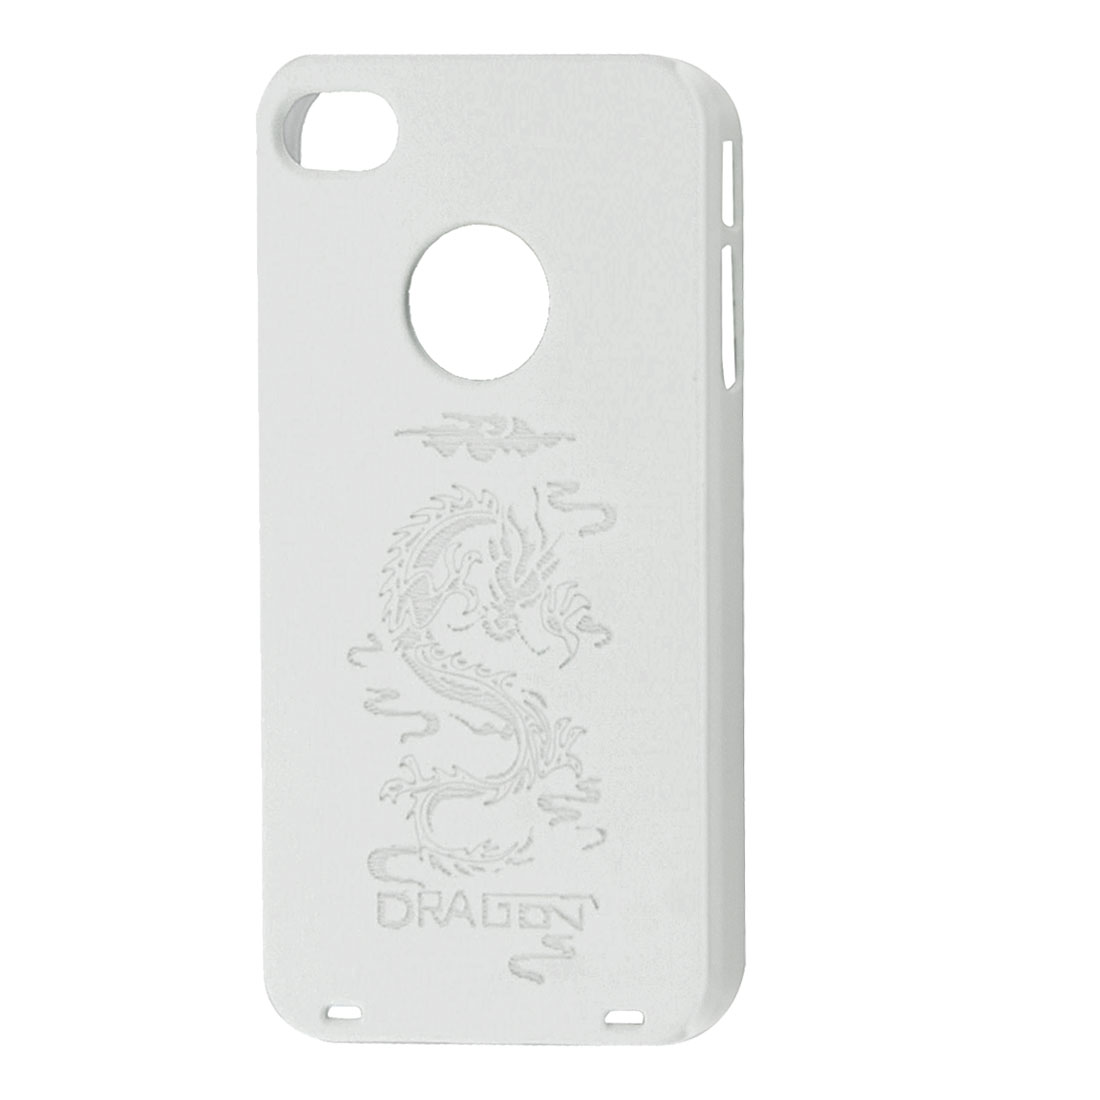 Gray Dragon Pattern White Rubberized Hard Back Case for iPhone 4 4G